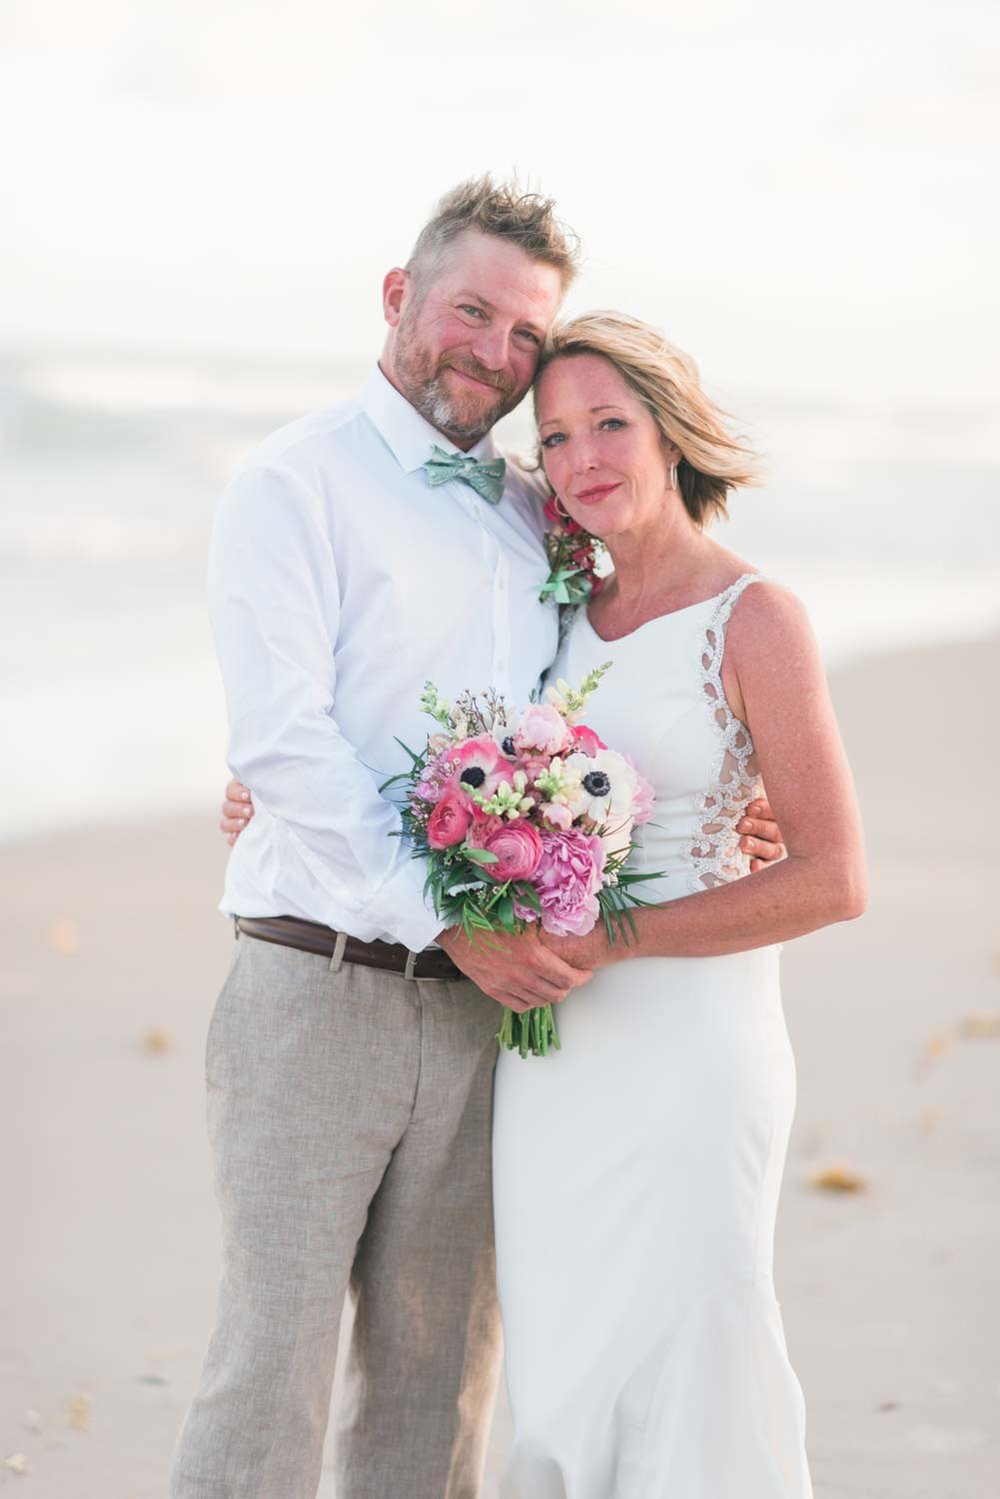 Cape Canaveral Beach Wedding Photographer - Rania Marie Photography-14.jpg